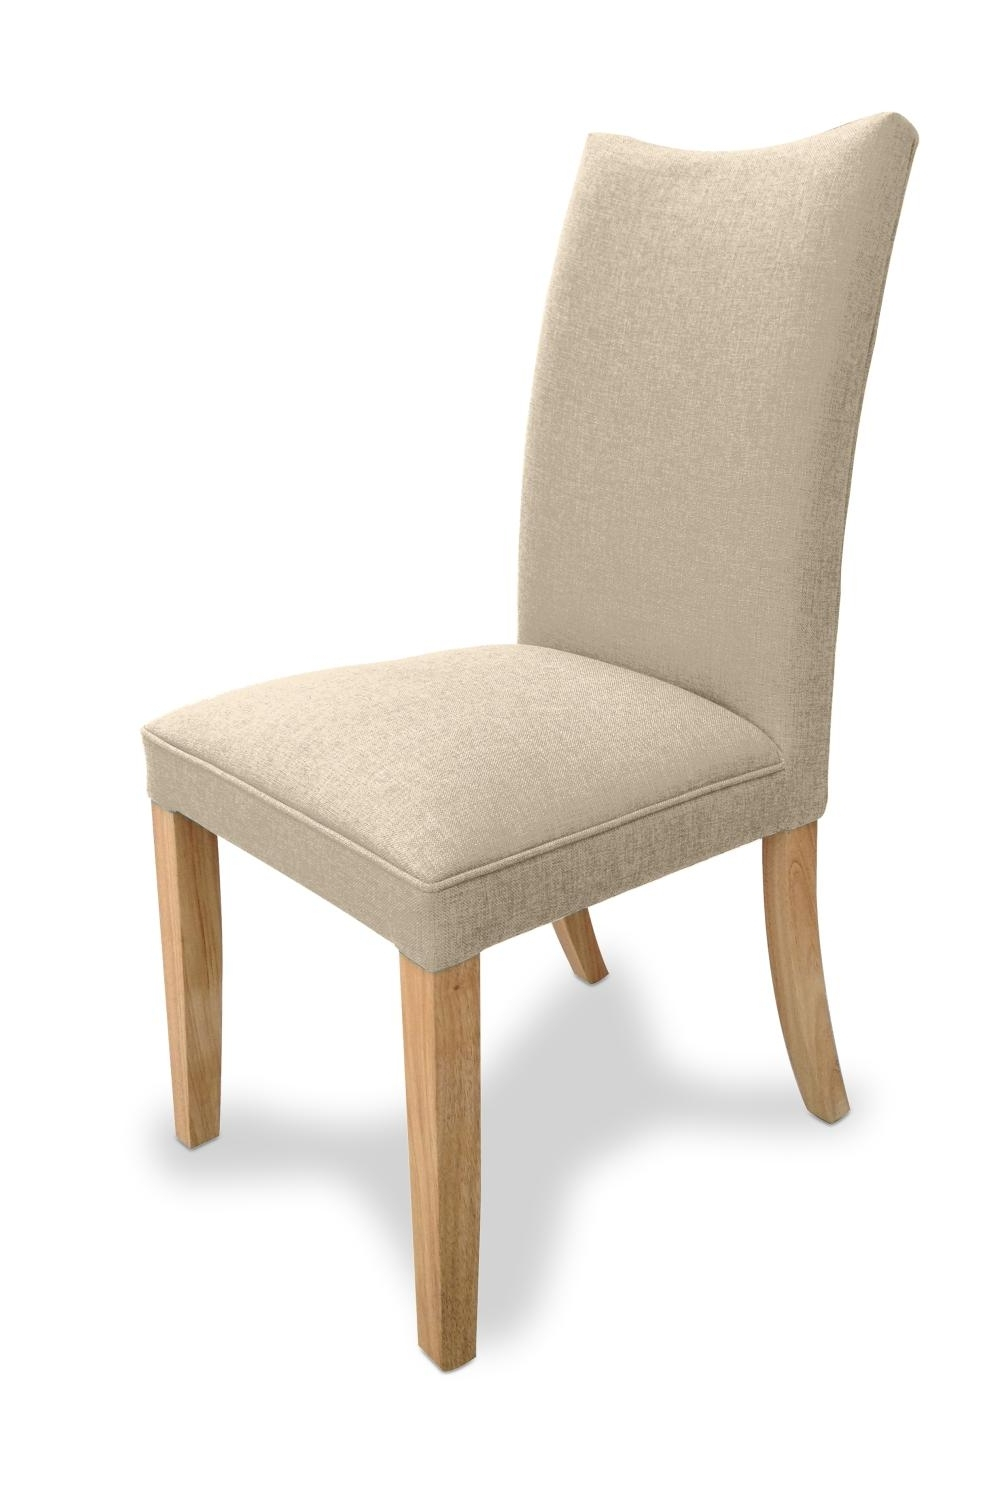 Famous Jessica Fabric Dining Chairs With Fabric Dining Chairs (View 6 of 25)